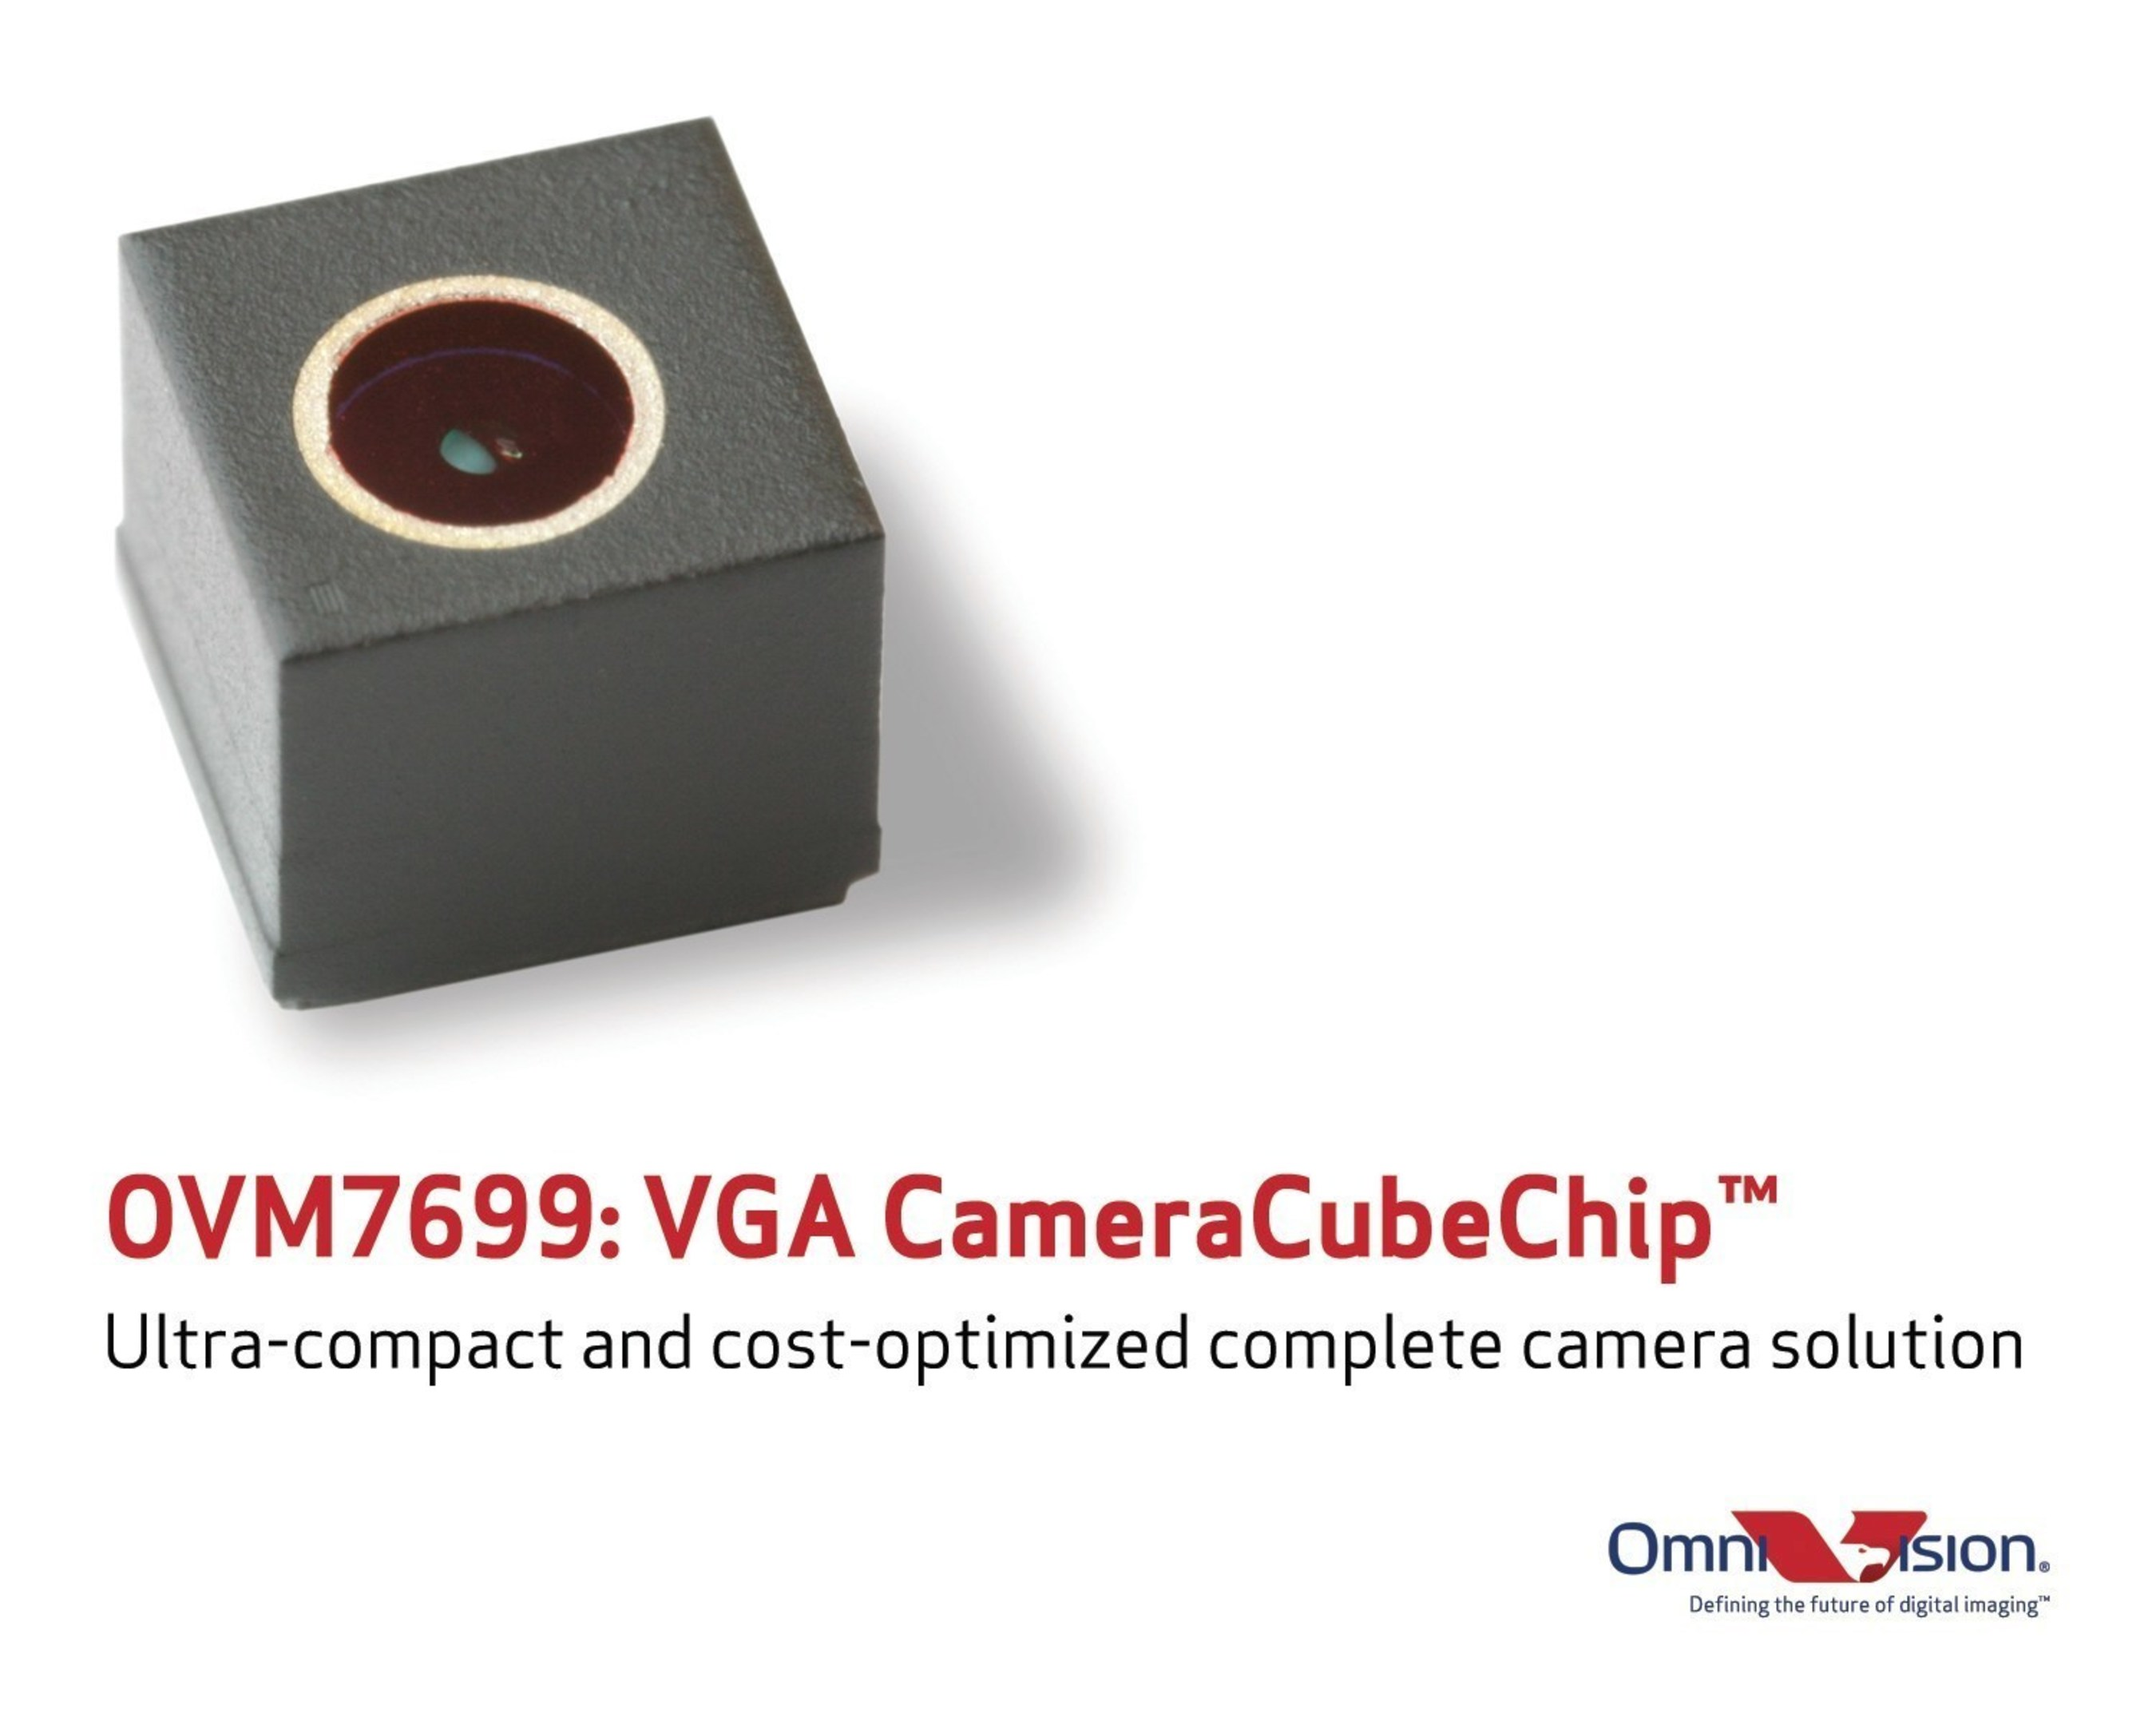 OmniVision's OVM7699: Ultra-compact and cost-optimized complete camera solution.